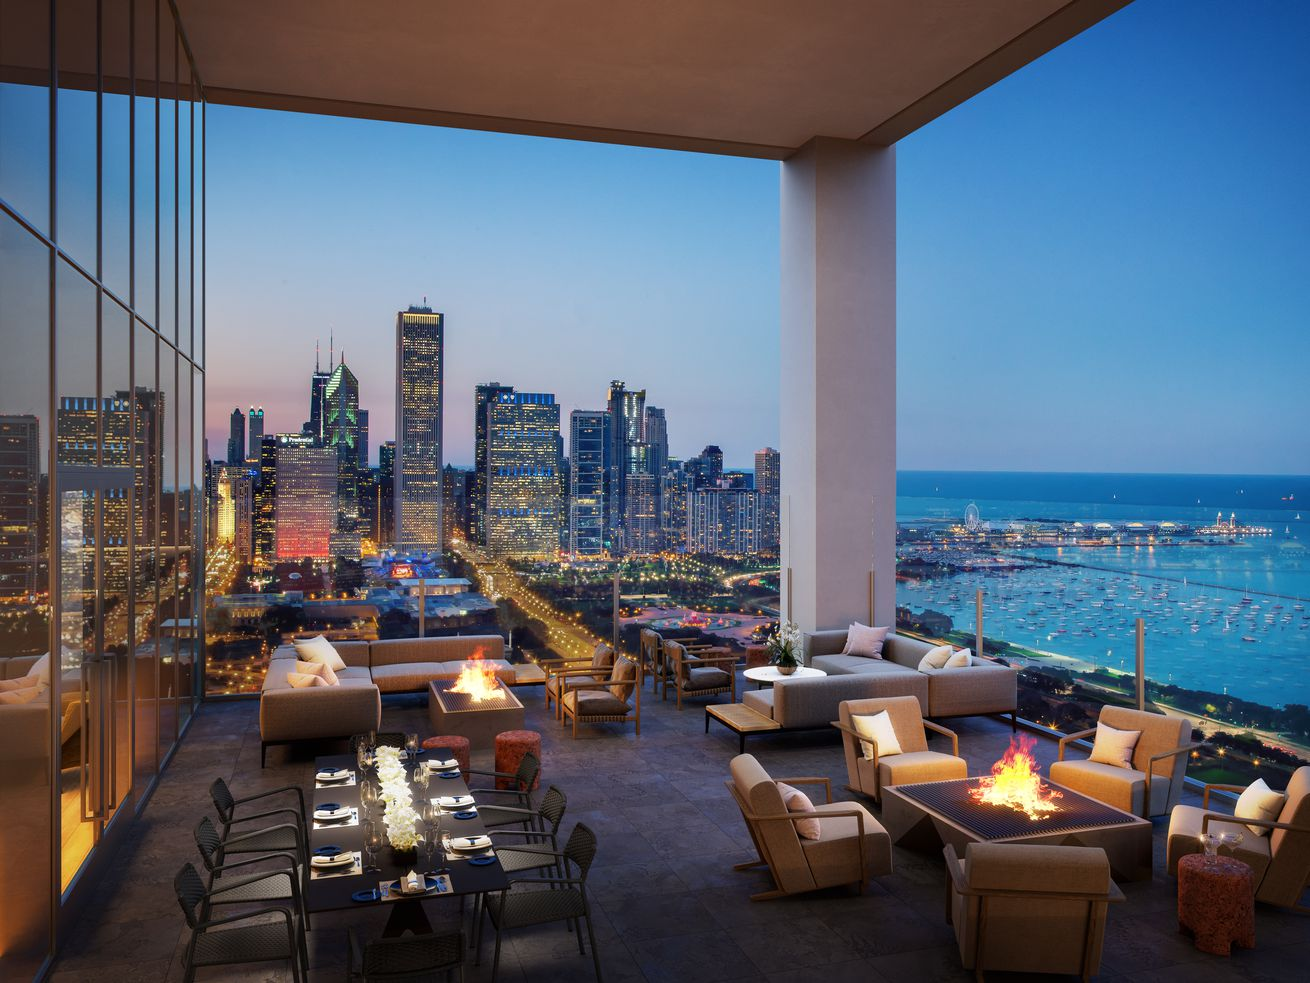 An outdoor amenity deck overlooks Chicago's Grant Park, Monroe Harbor, and Navy Pier.